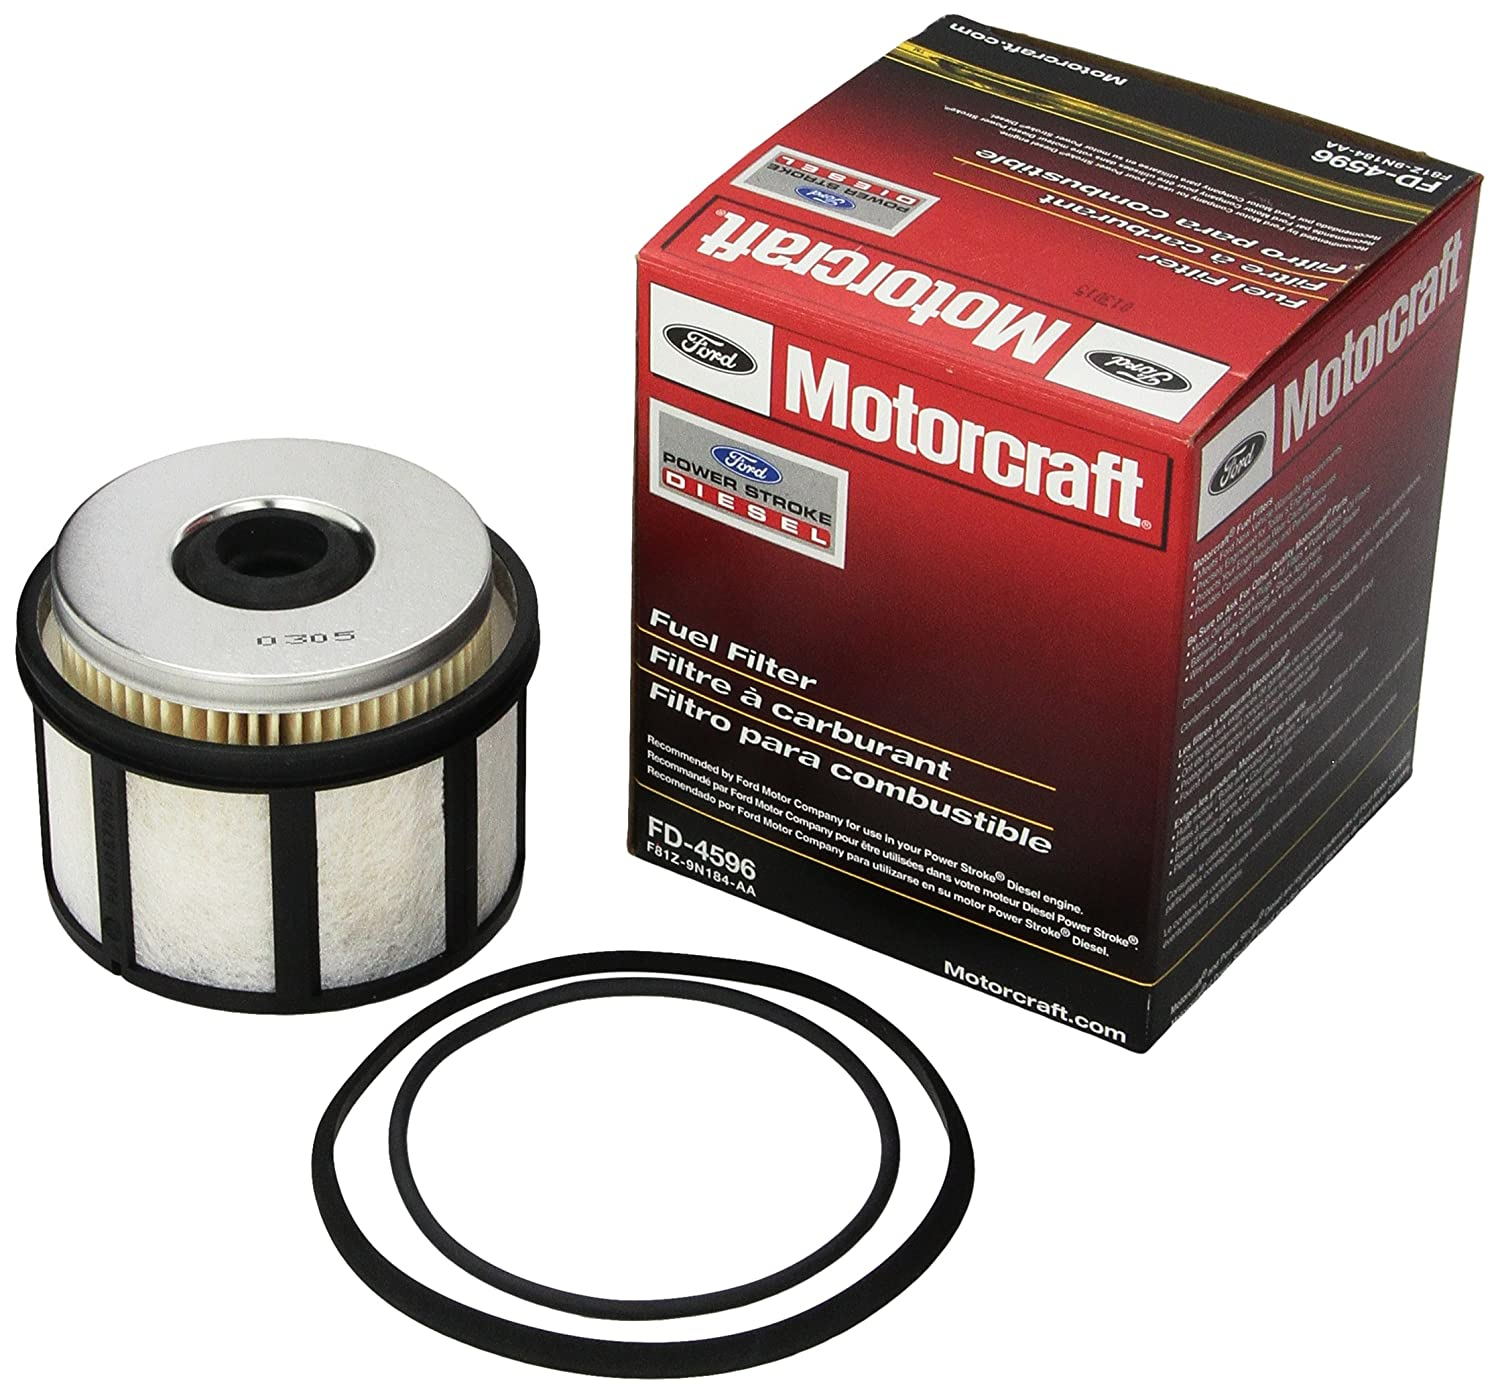 3. Motorcraft FD4596 Fuel Filter